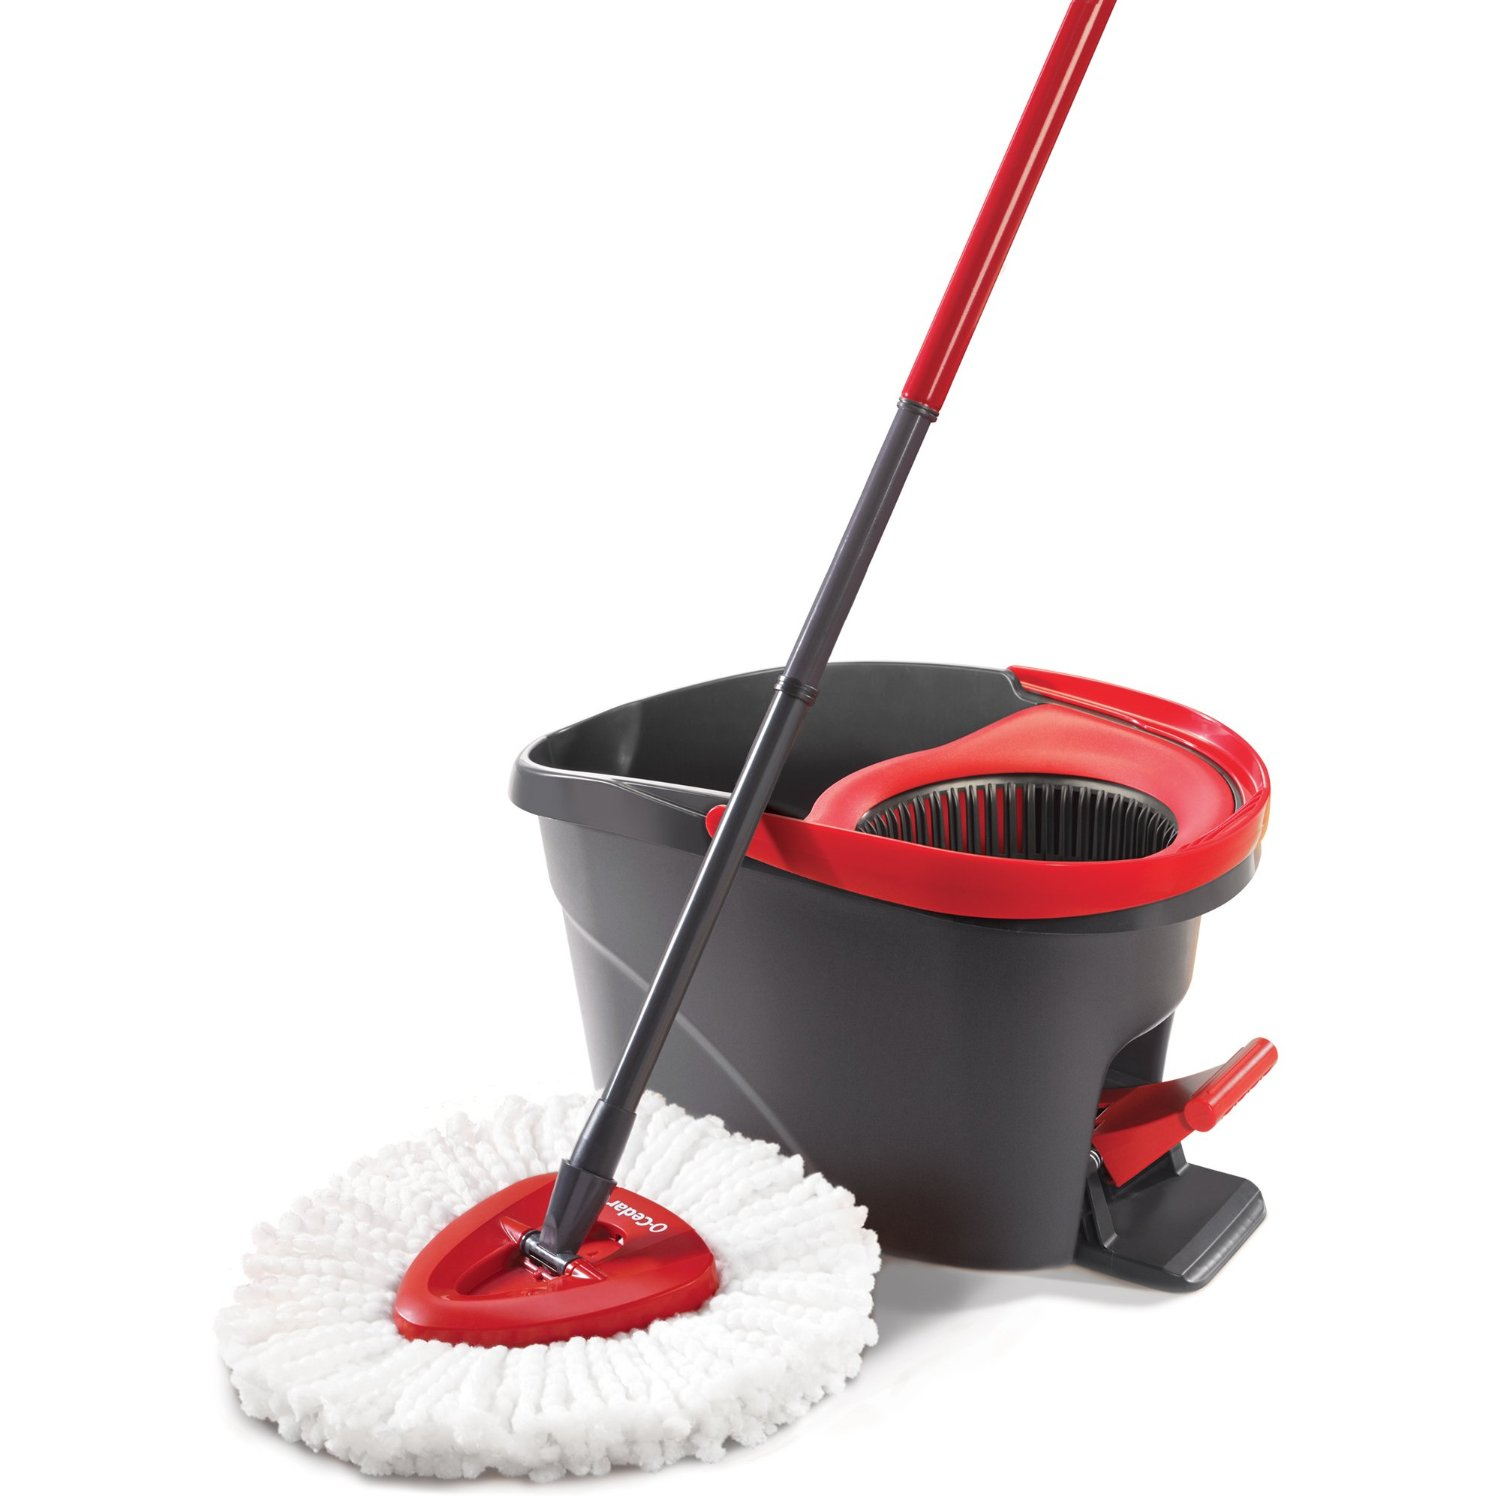 Best Mop For Kitchen Floor 8 Best Mopping Brushes In 2017 Mopping Brush Reviews